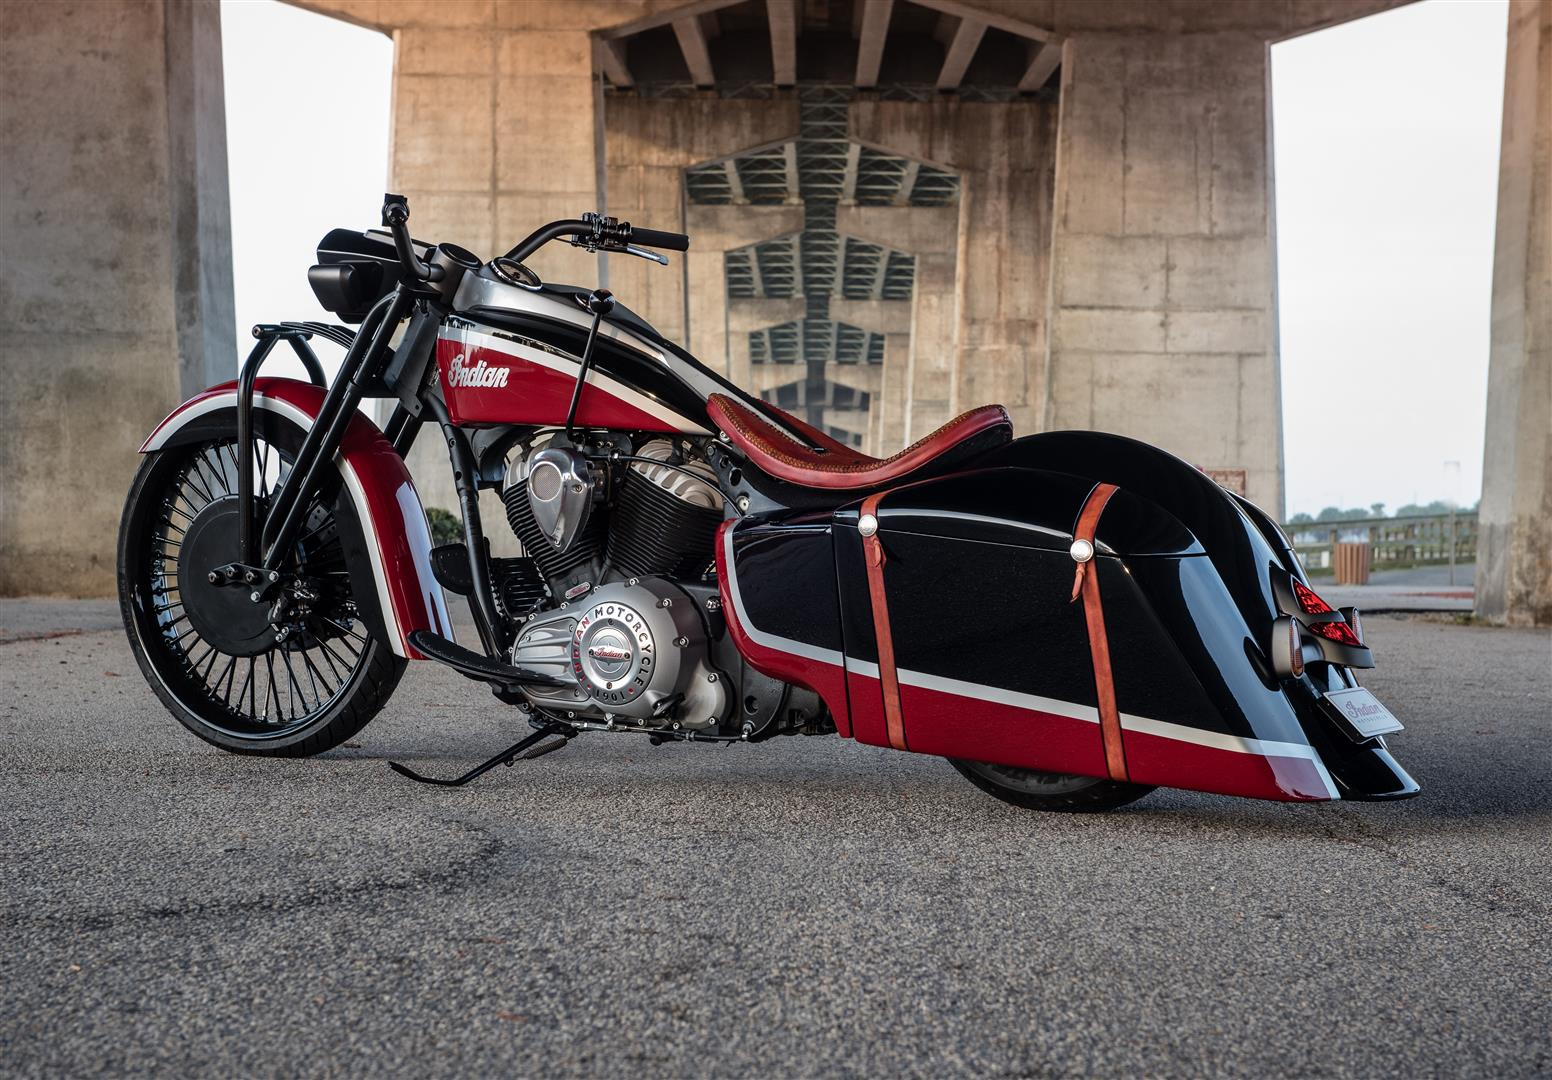 INDIAN MOTORCYCLE PRESENTS THE 'FRONTIER 111' CUSTOM SPRINGFIELD